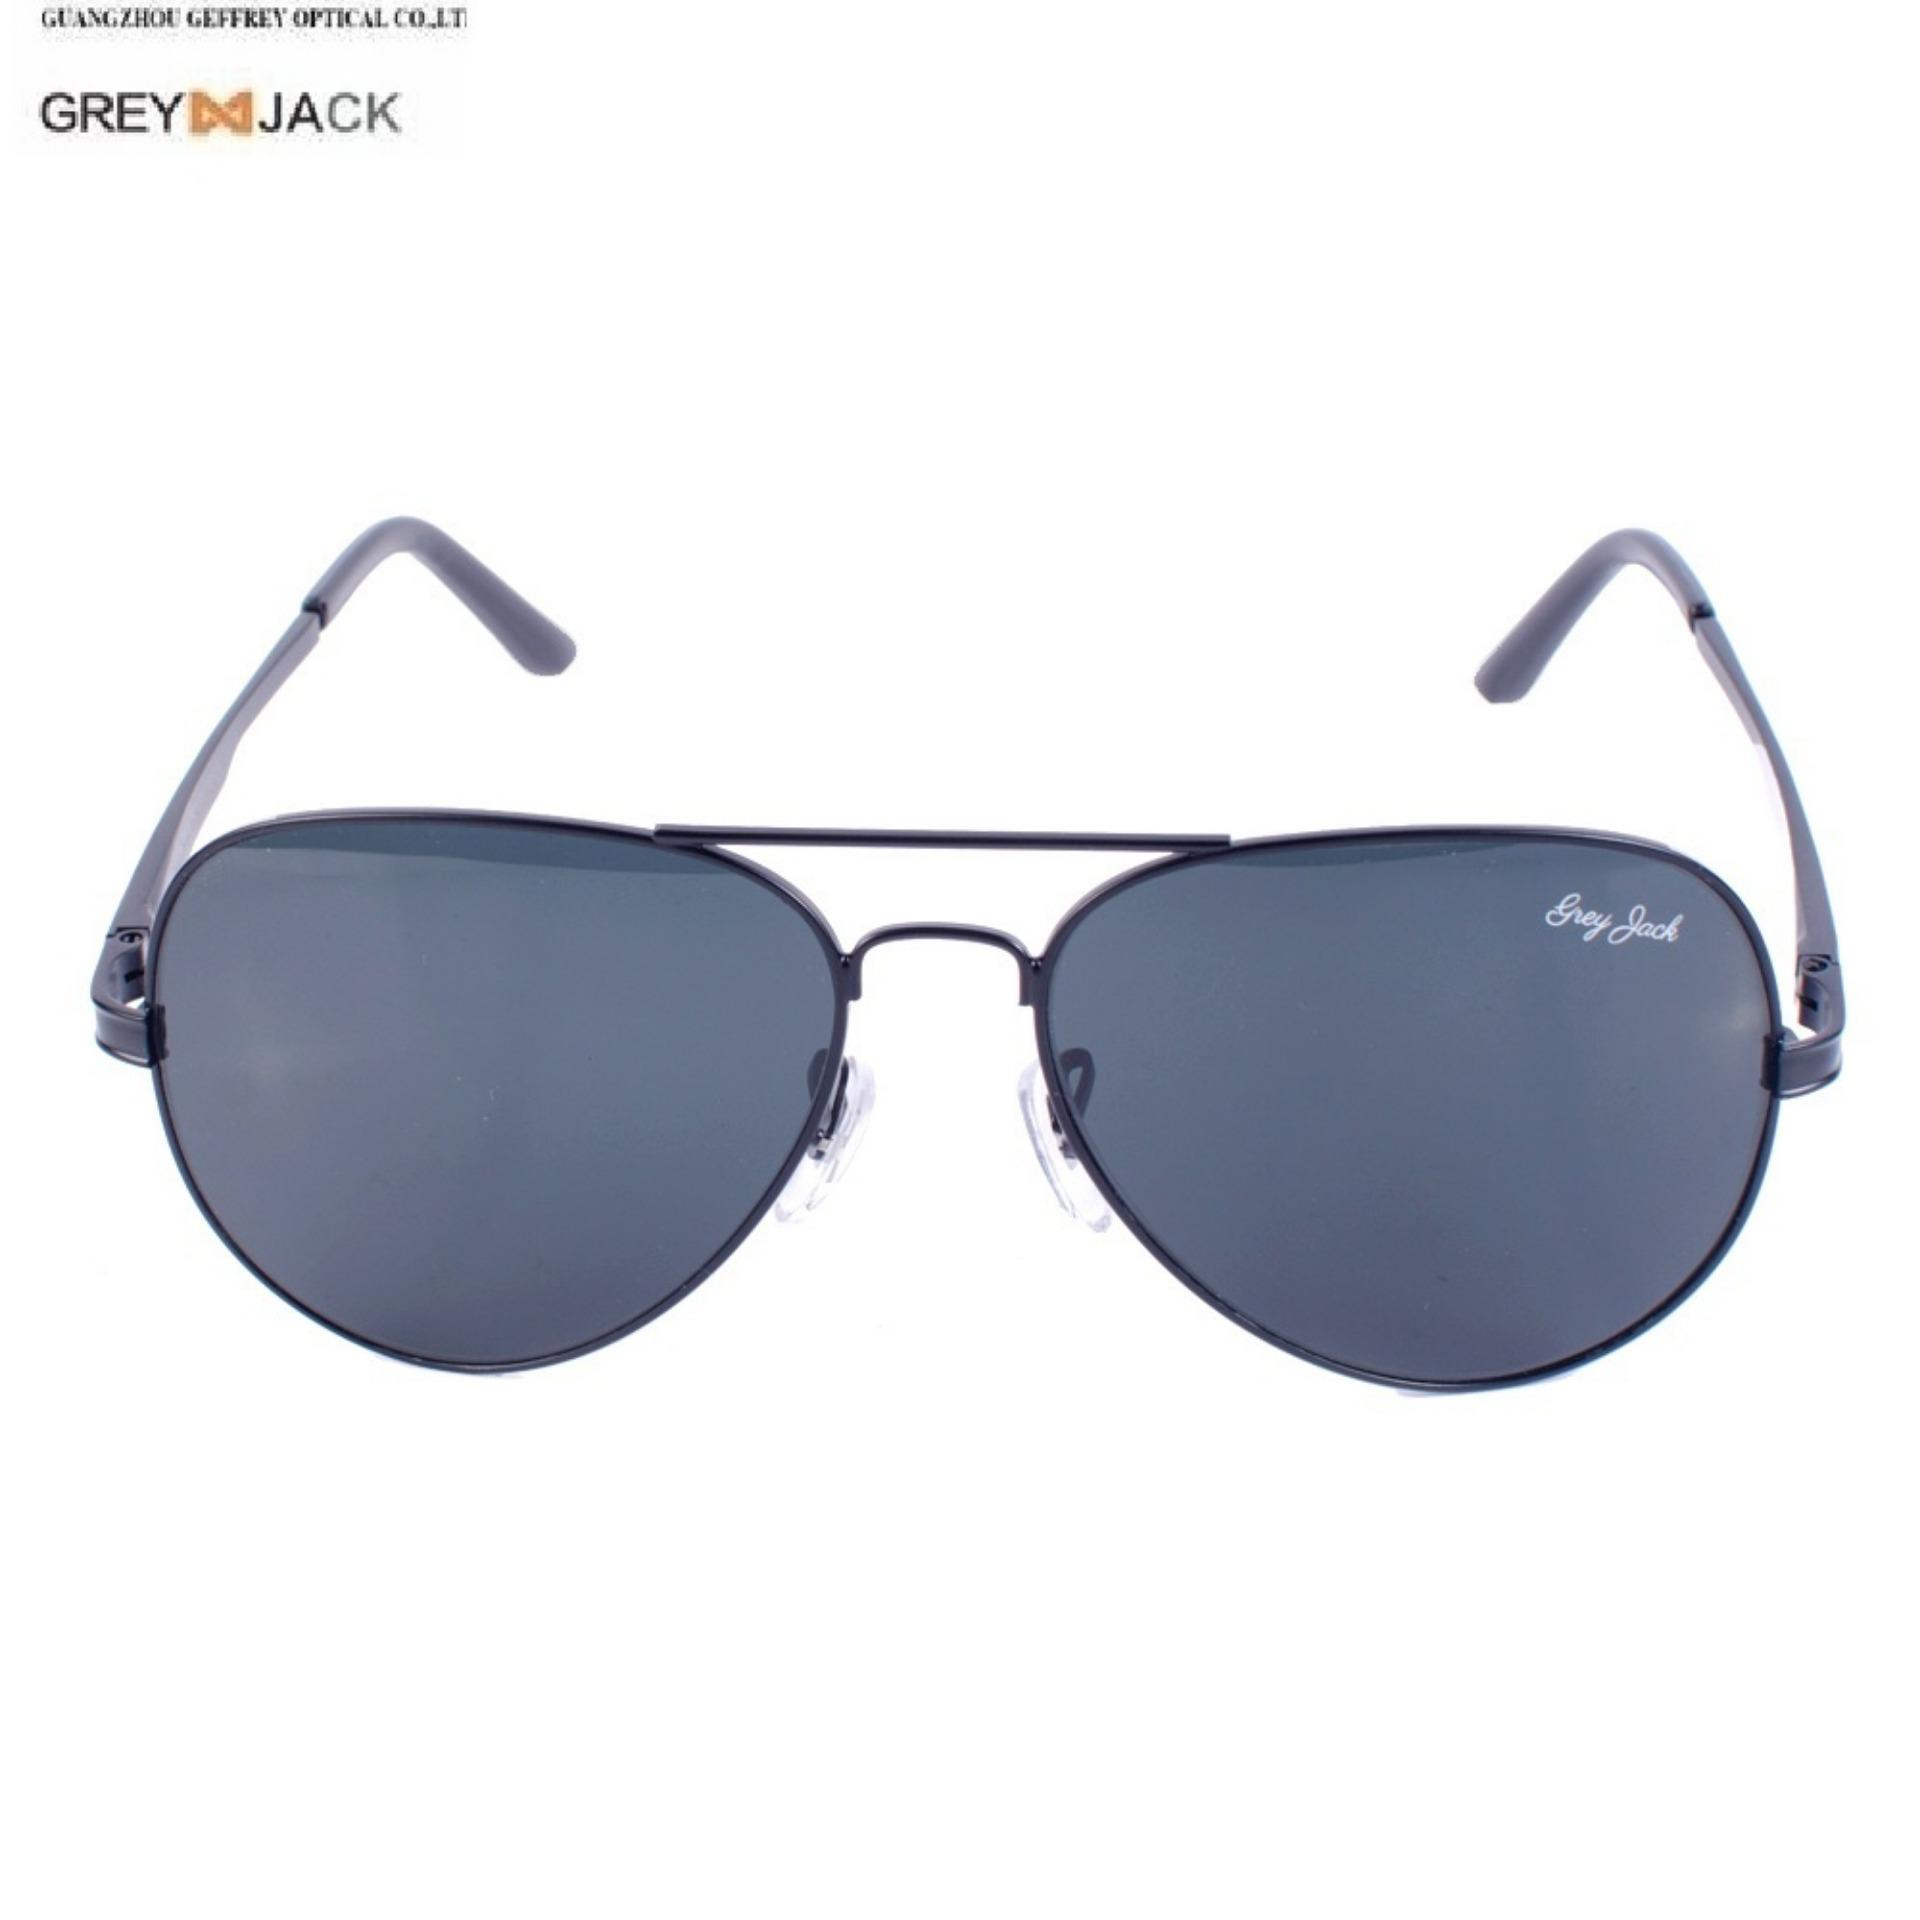 e28b9debef3 GREY JACK Pilot Design Flat Black Lenses 400% UV Protected Sunglasses  (Unisex)